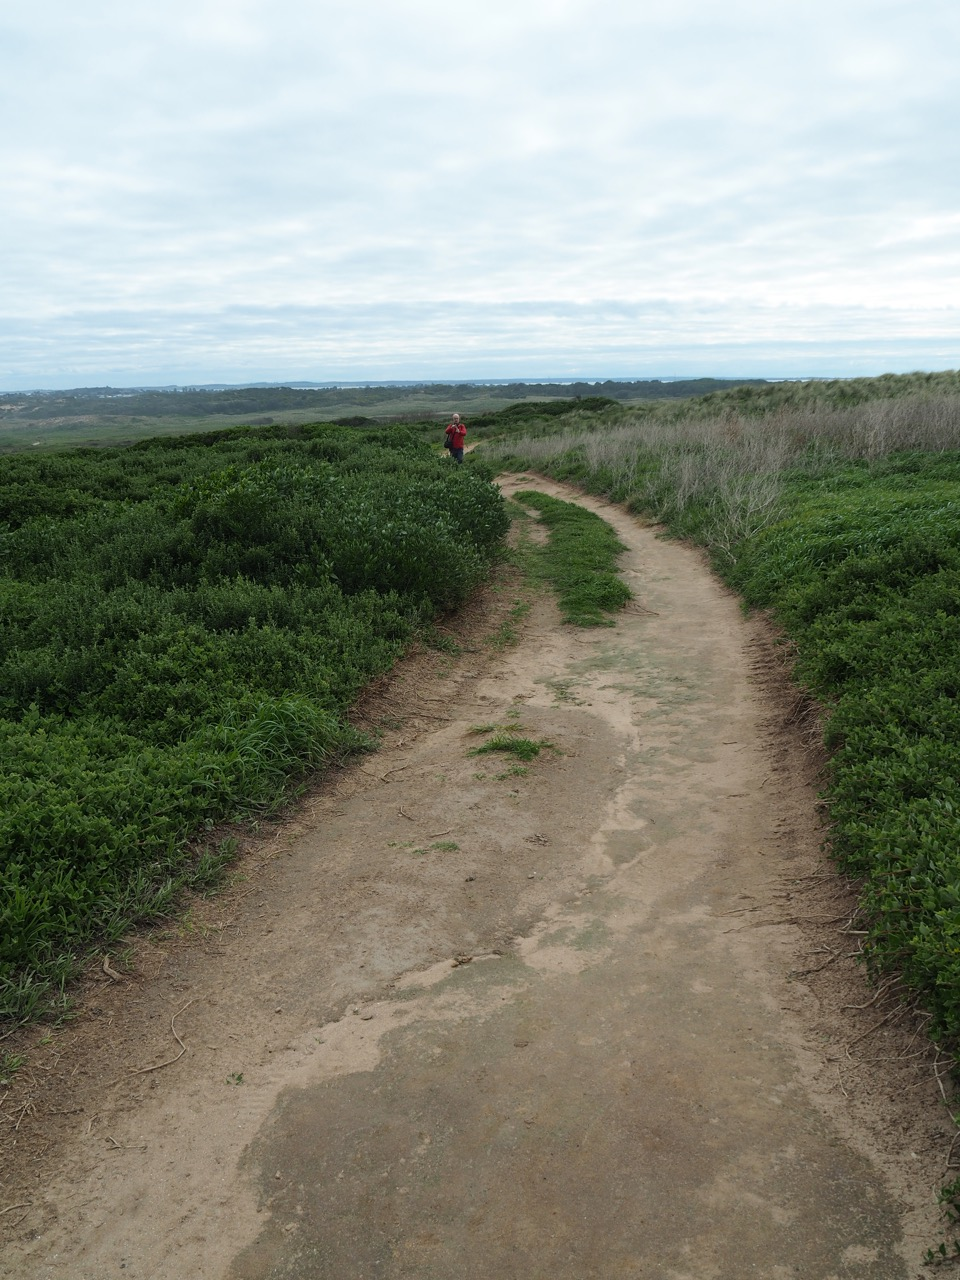 The path to the Pinnacles.